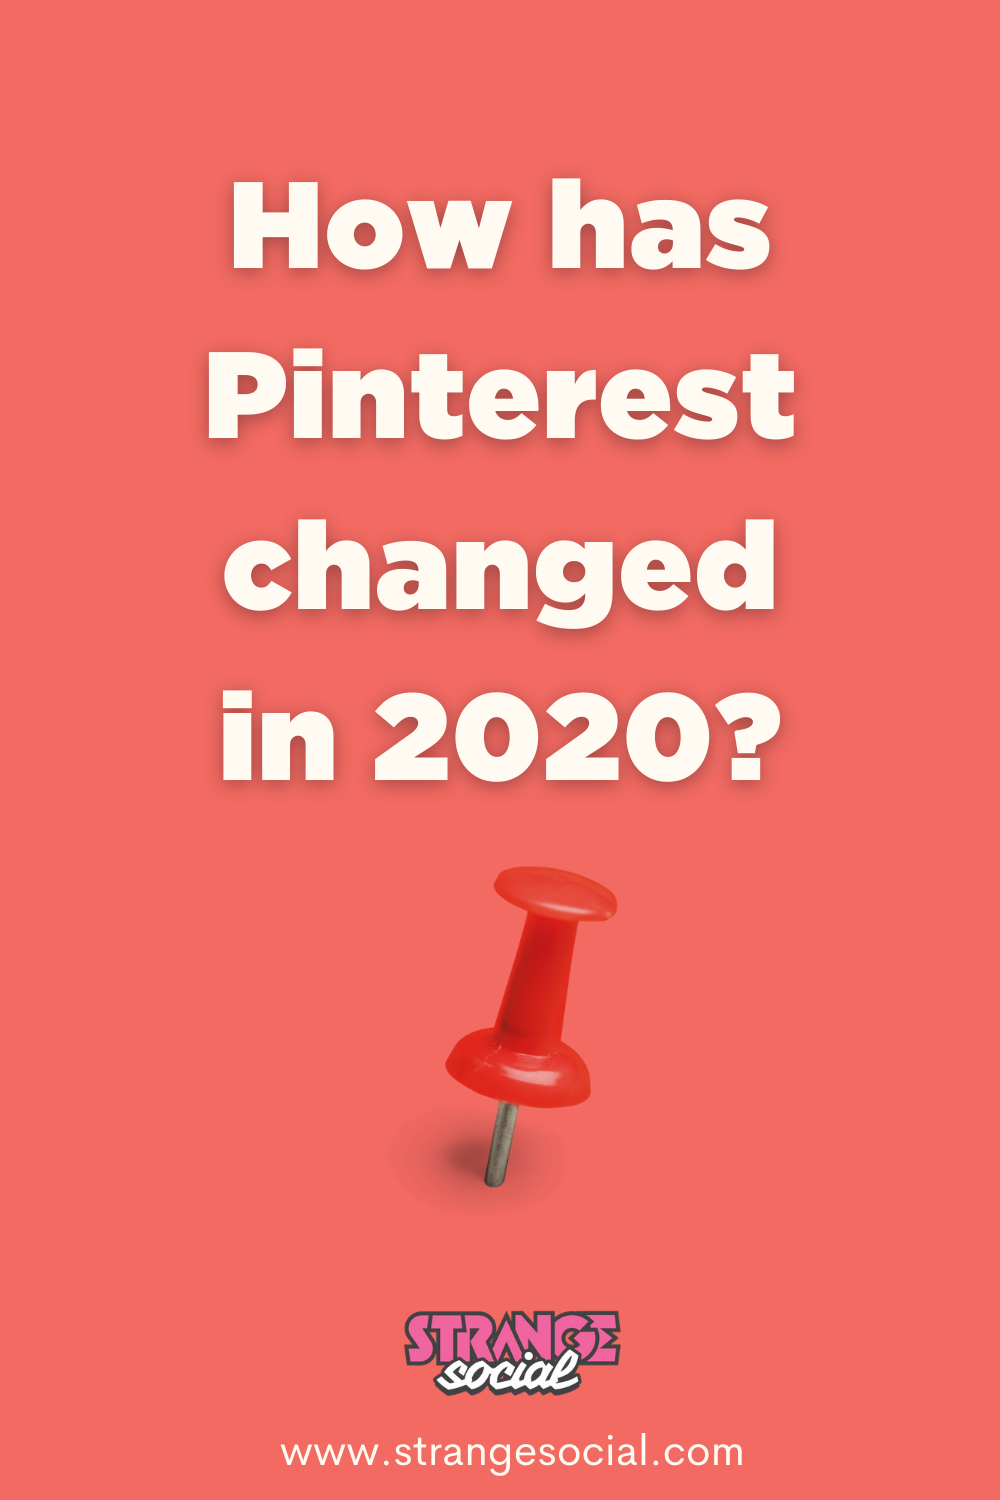 Pinterest has changed a lot in the past year, get up to date with the latest changes in this blog.